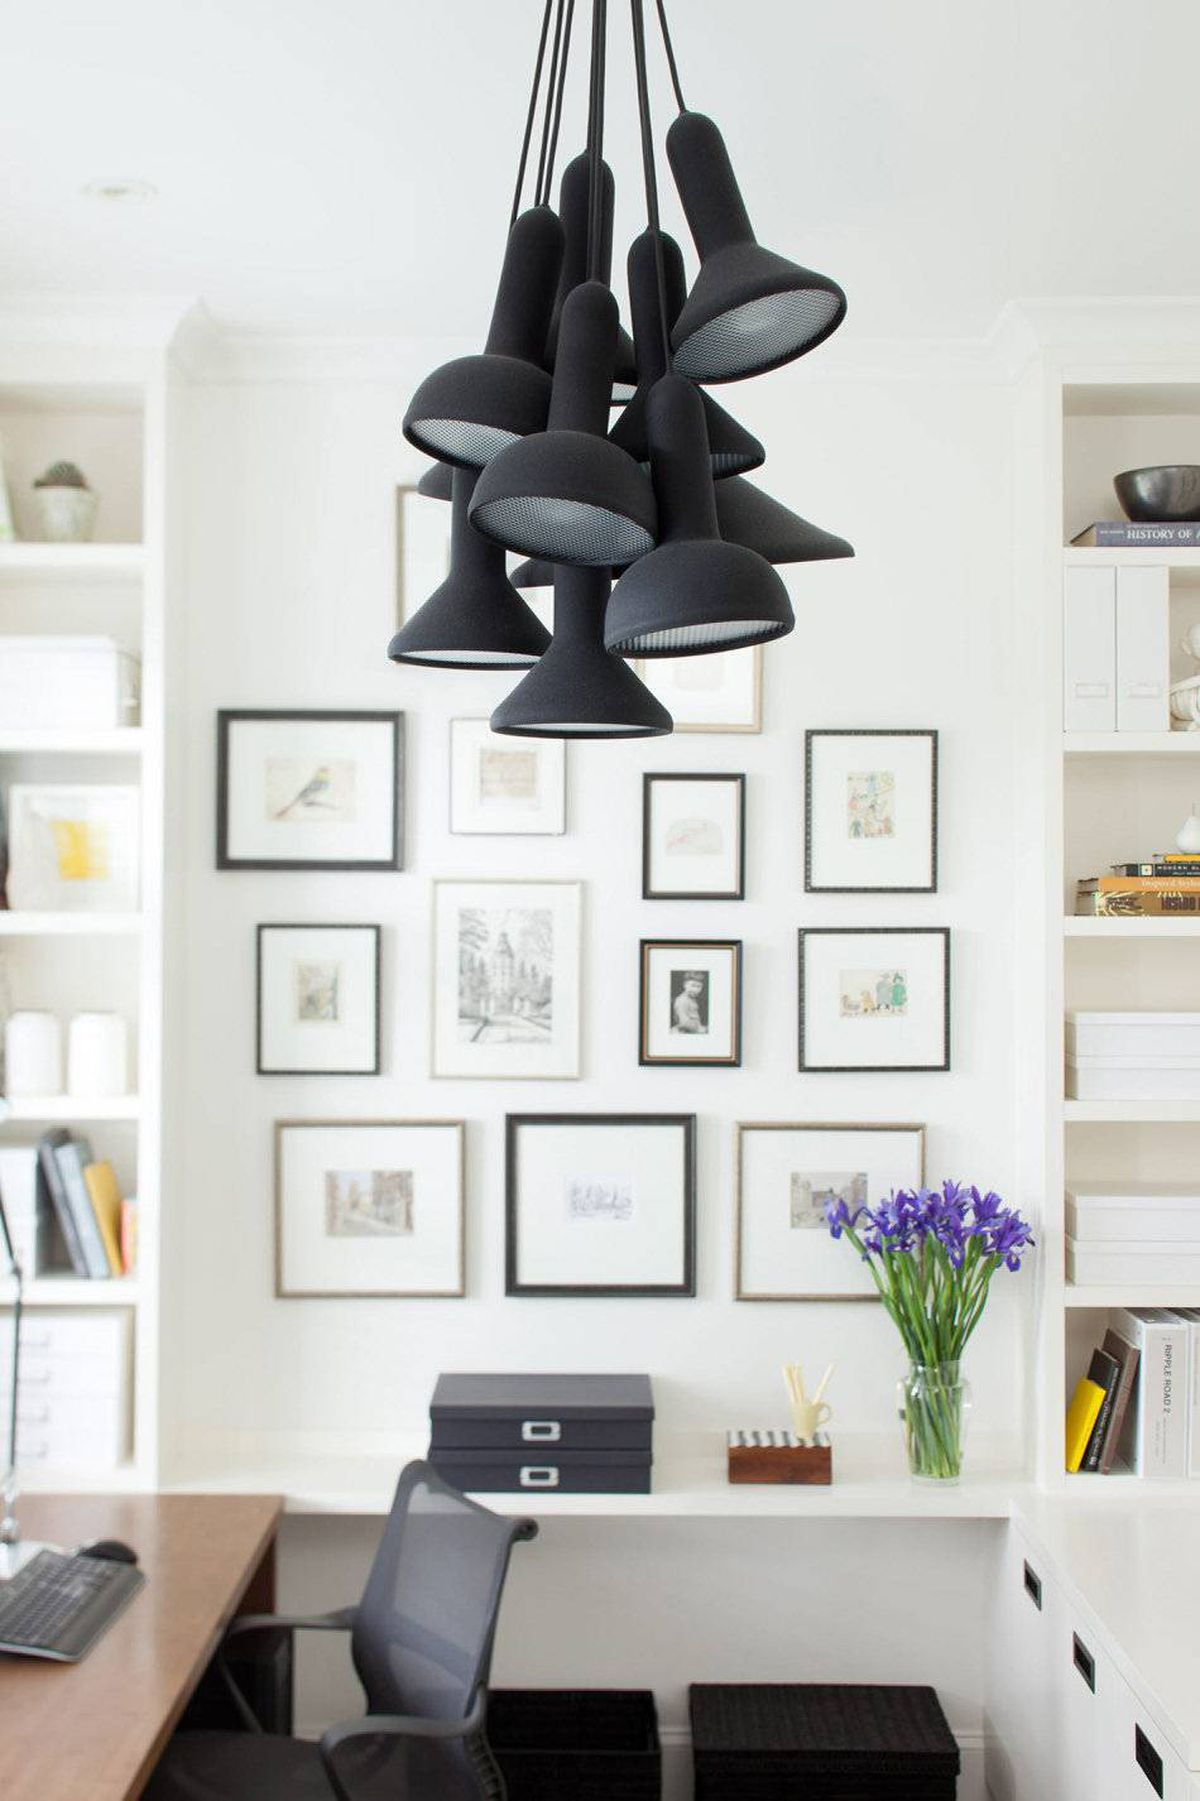 The playful utilitarianism of the Torch Light fixture counters the plain white of the office background, leaving the matte black finish to reference the room's other dark elements--carpet, hardware, computers, and Eames chairs.